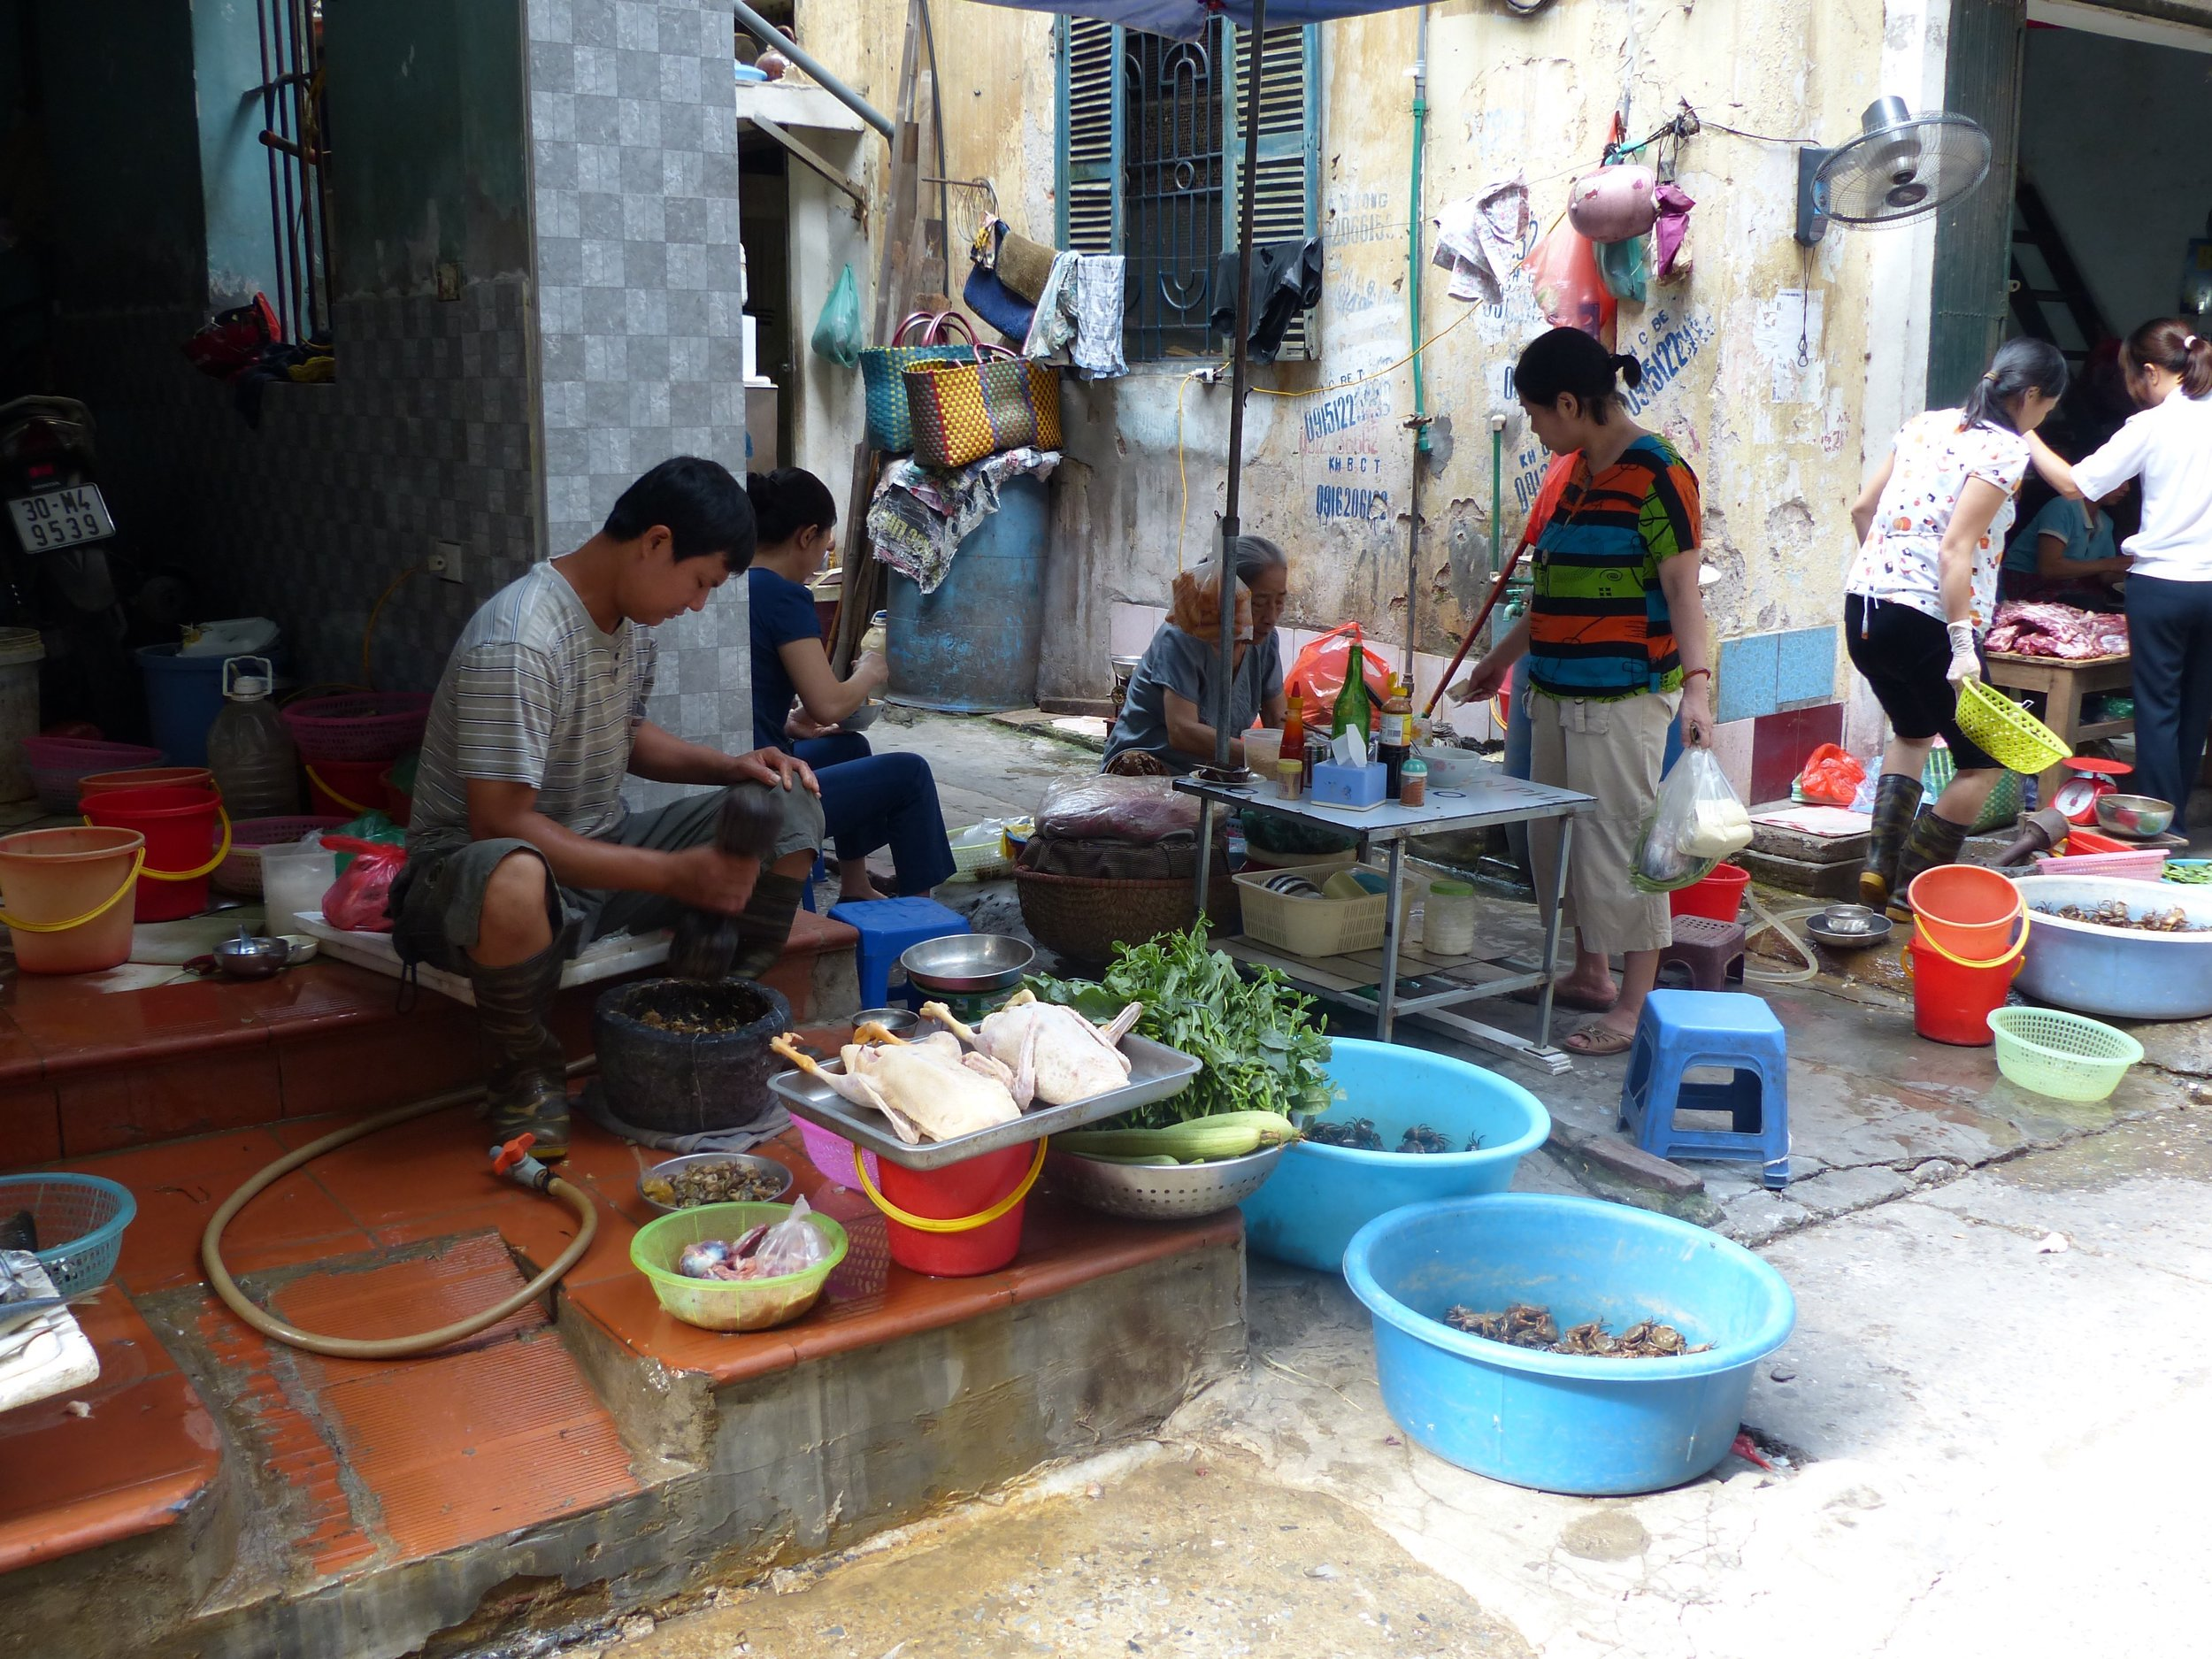 Here's the scene of that crab smashing. Just another day in Hanoi.